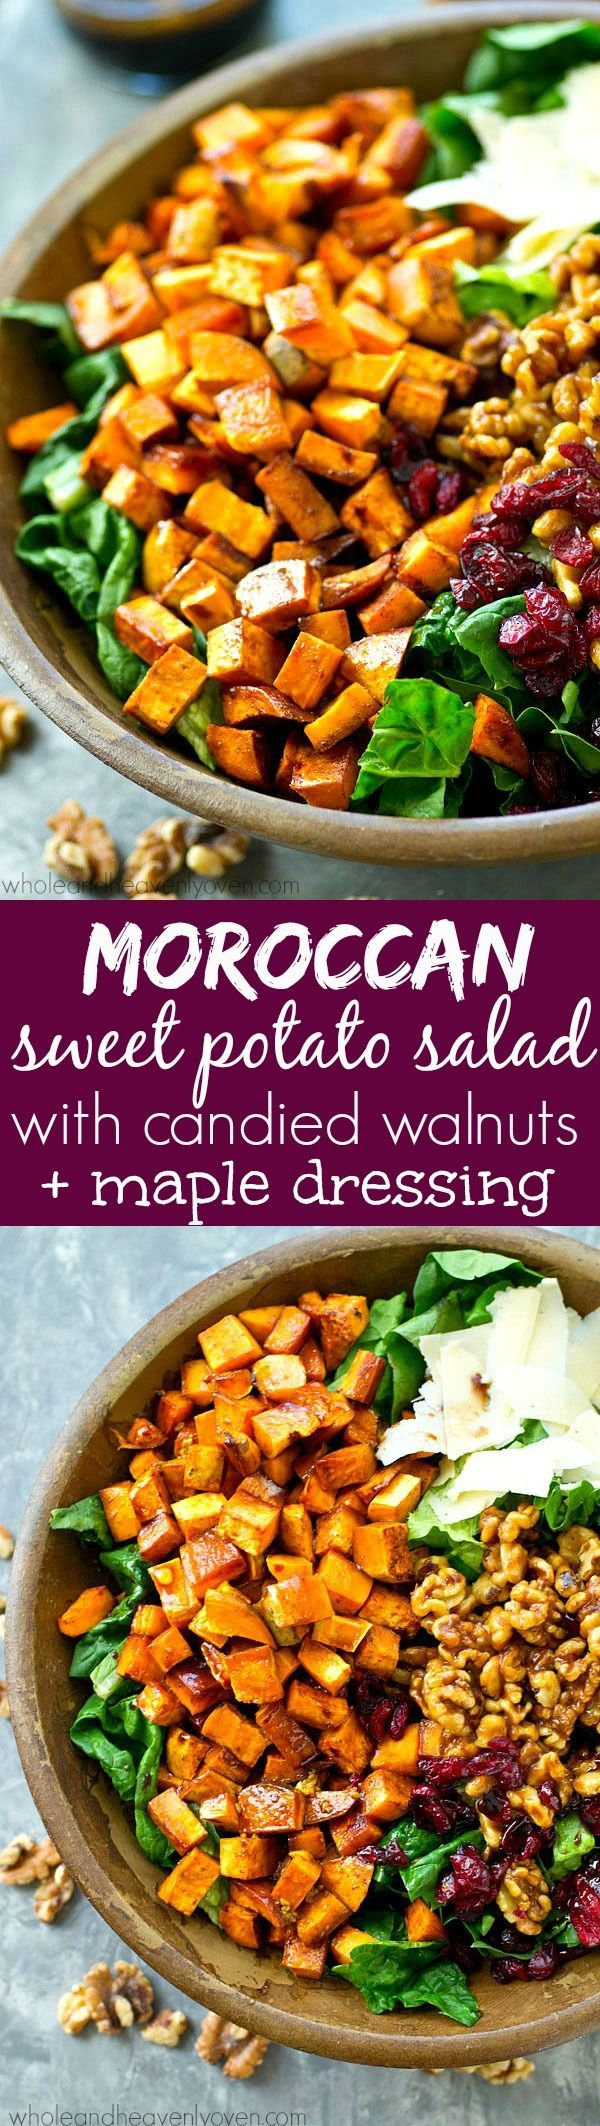 This fall harvest salad is piled high with spiced roasted sweet potatoes, sweet candied walnuts, and tossed in a tangy maple dressing for a gorgeous Thanksgiving salad you won't be able to get enough